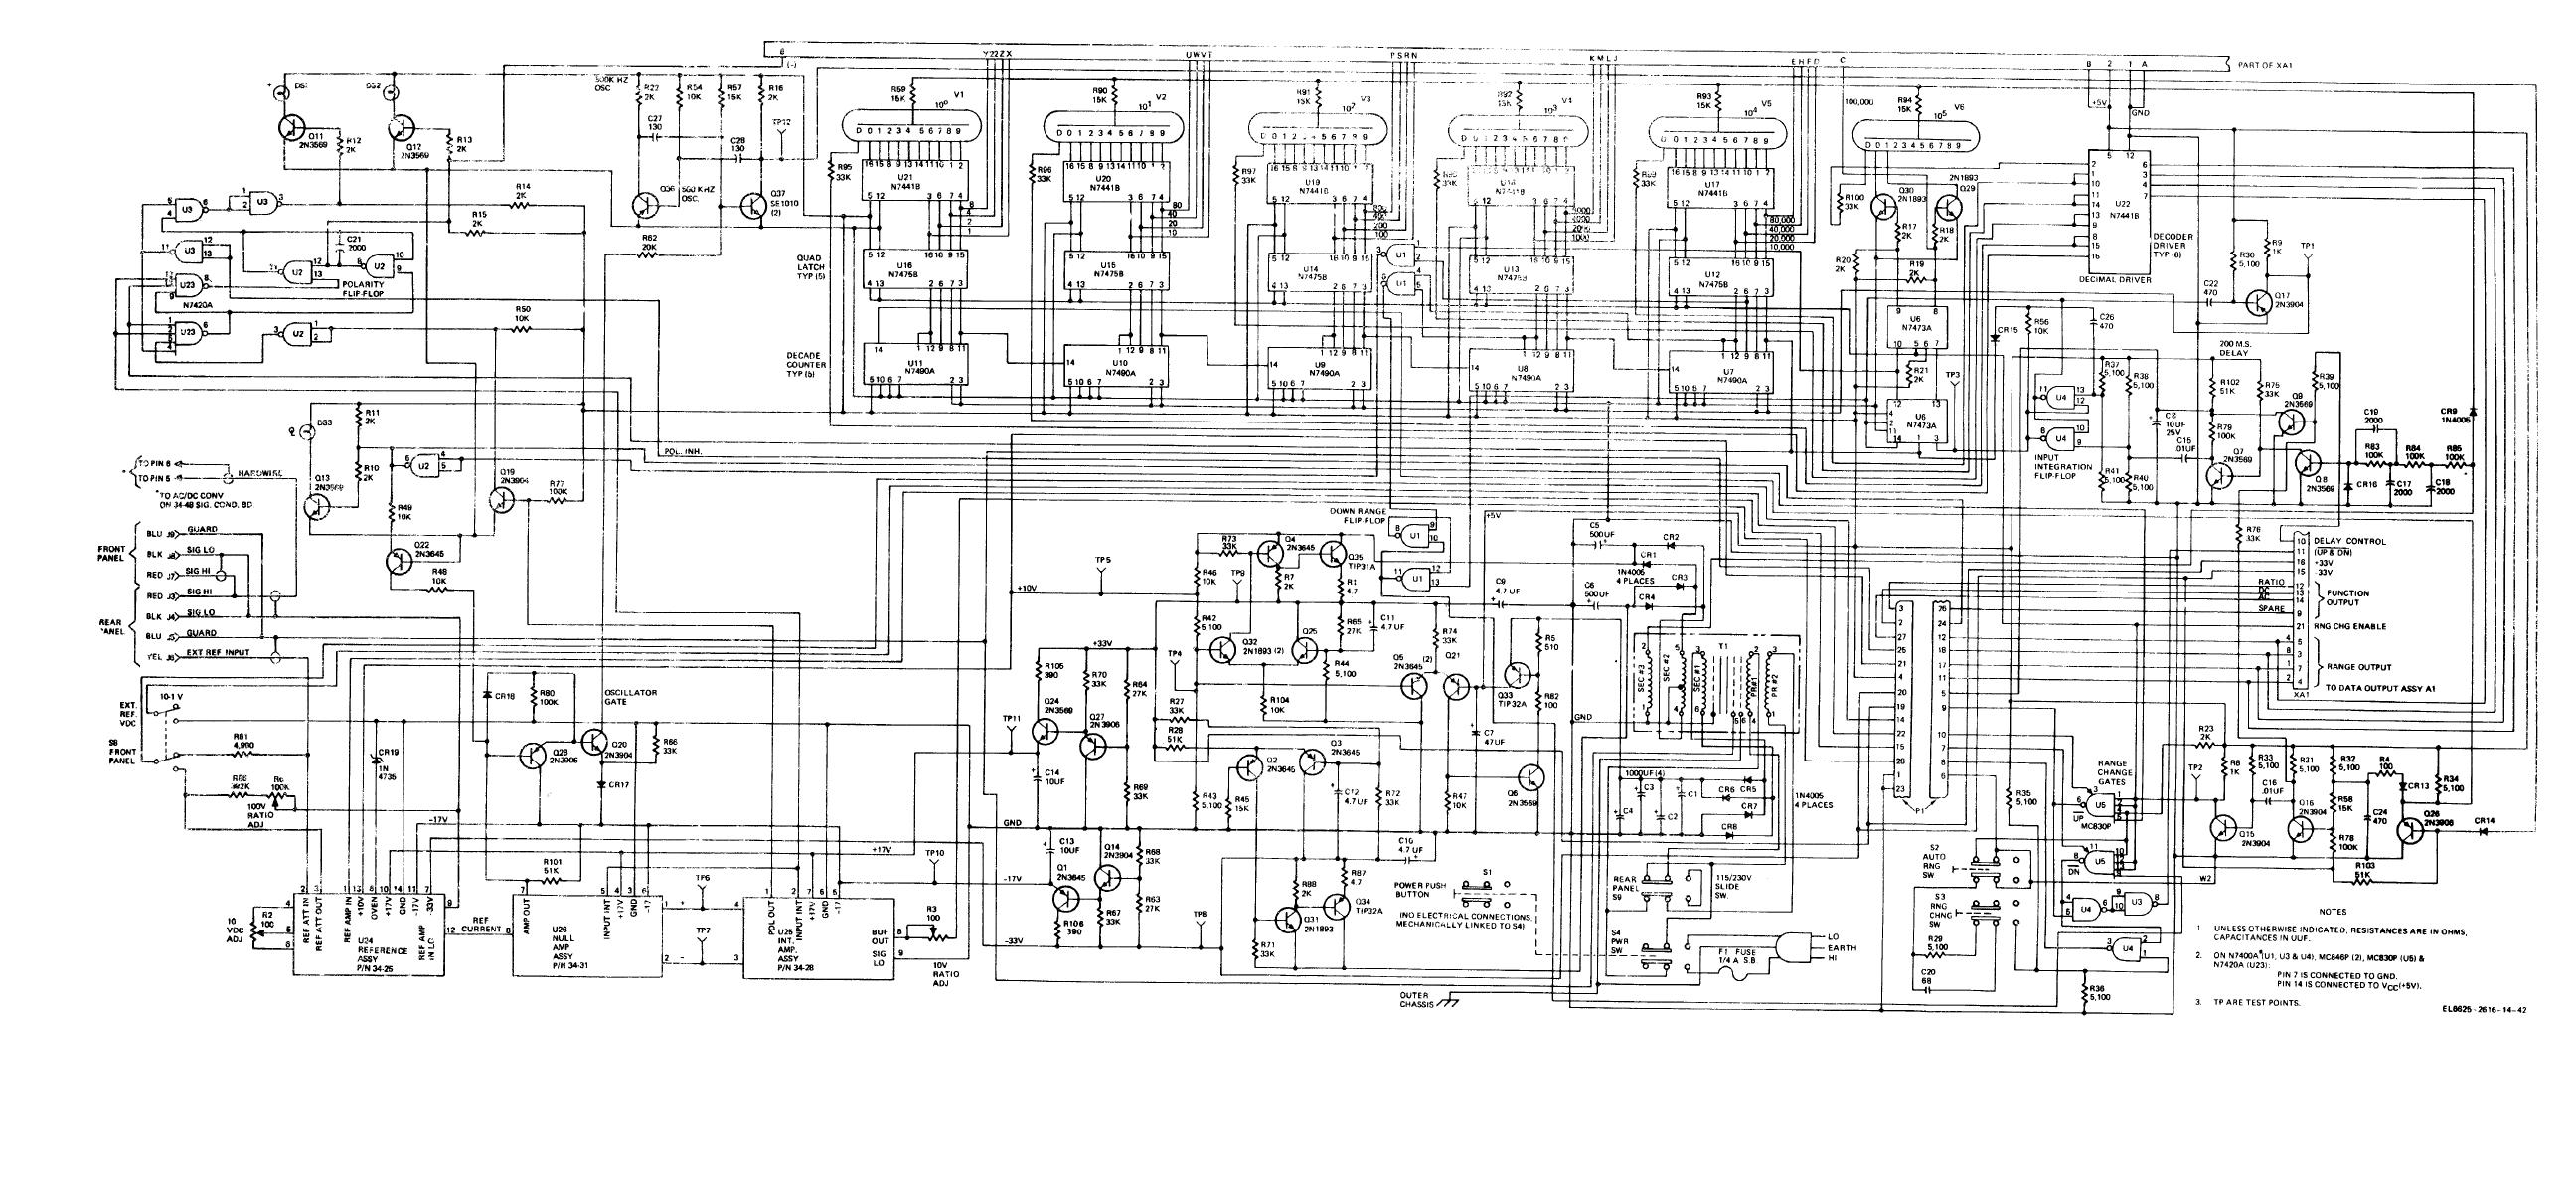 schematic diagram   unmasa dalhaschematic diagram